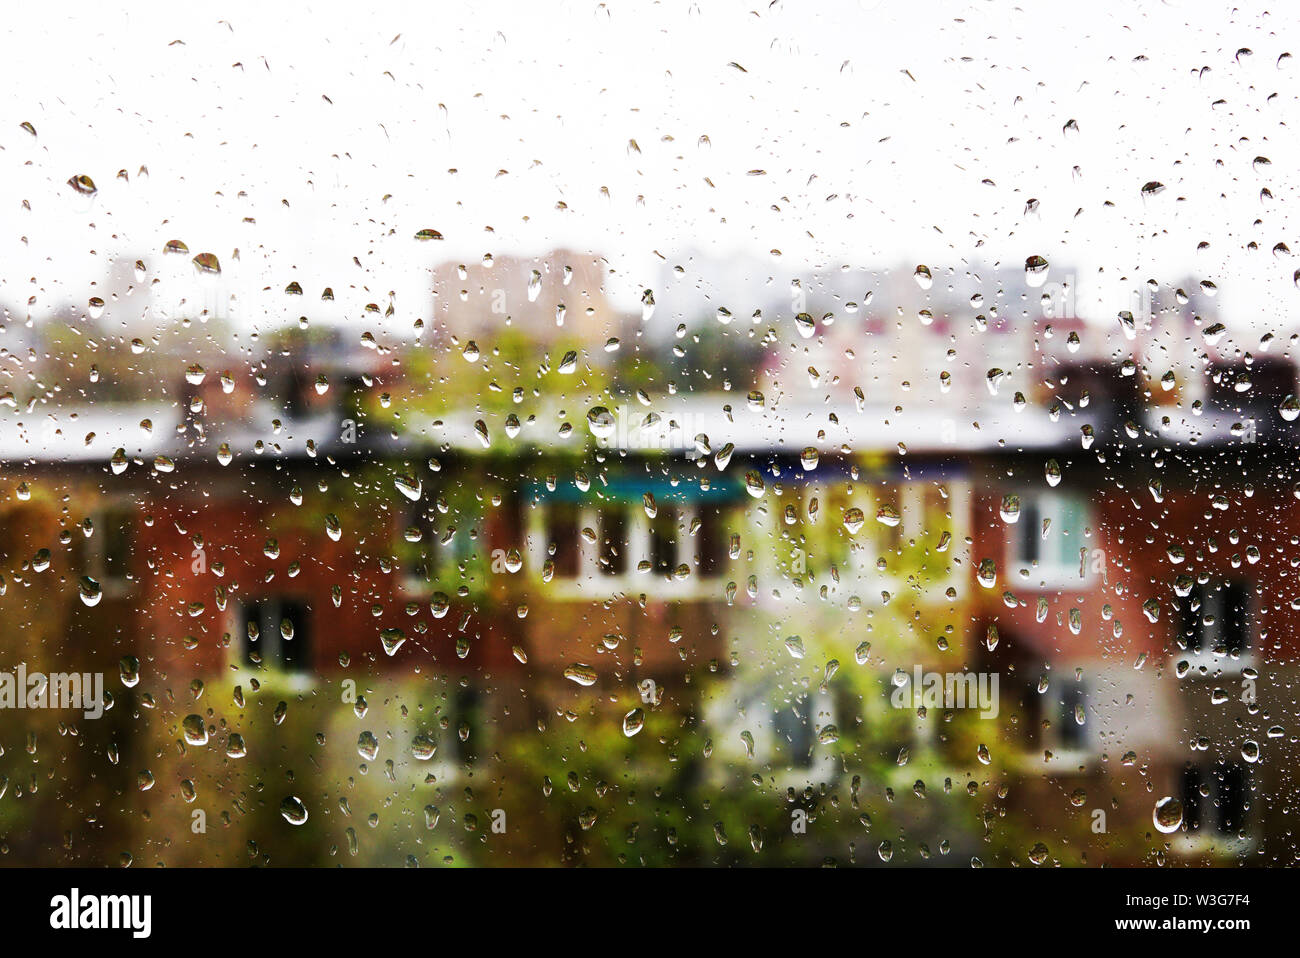 Drops of water on the window glass. Behind the glass silhouettes of buildings with windows - Stock Image